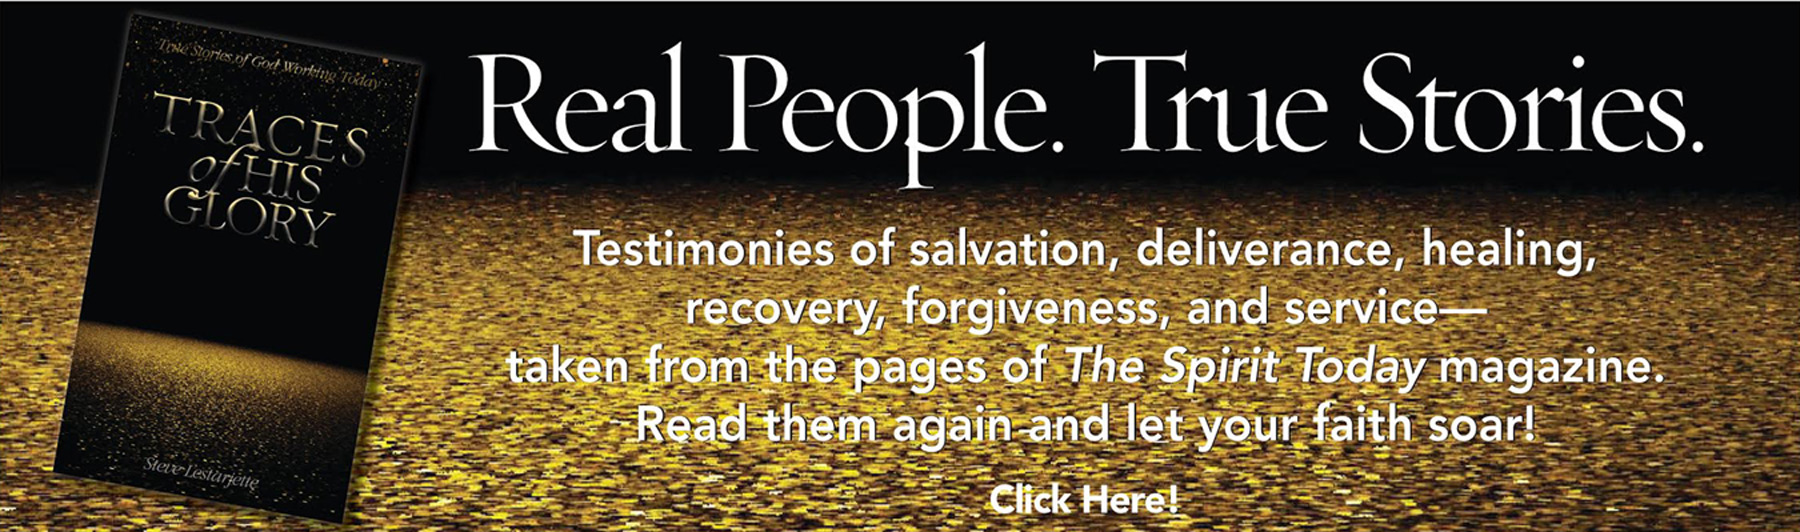 Traces of His Glory: Real People; True Stories